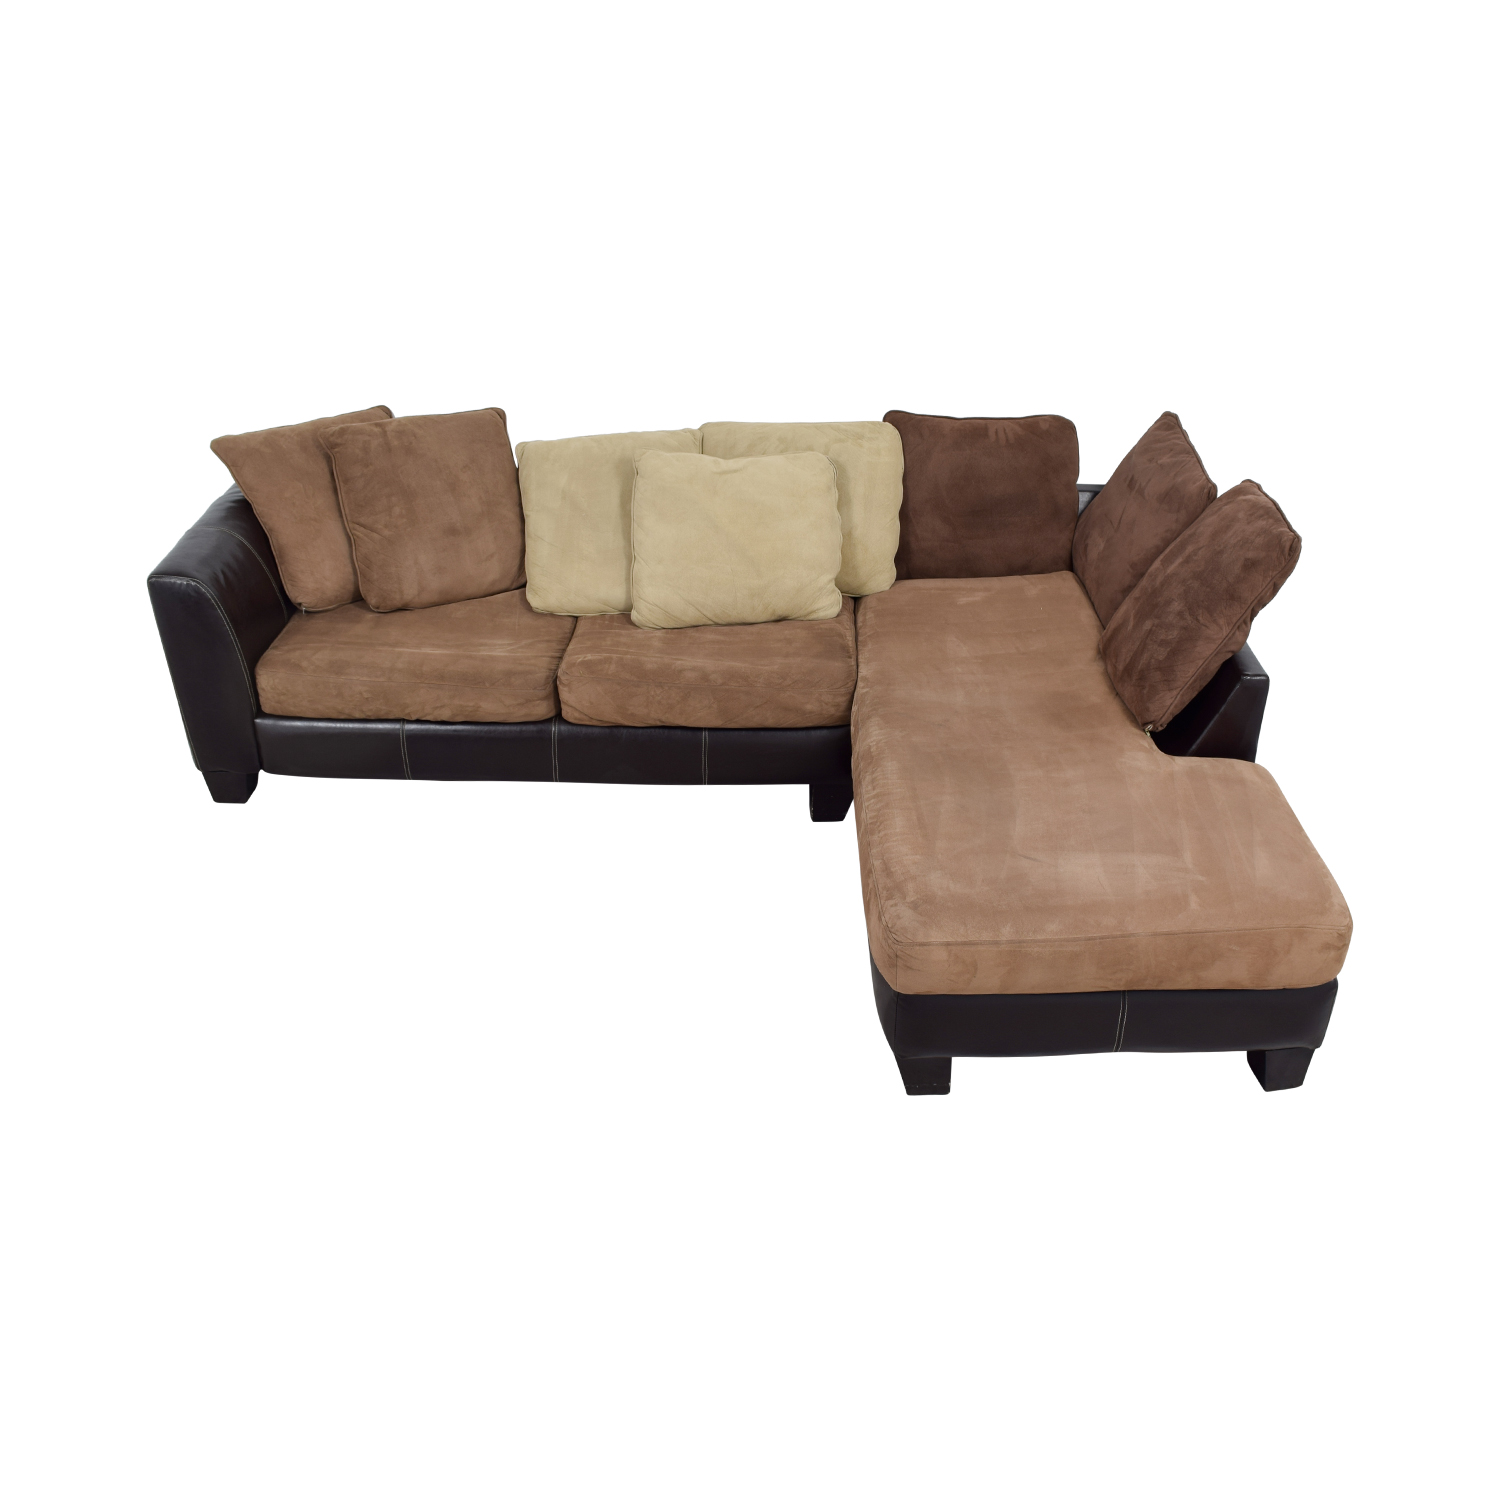 loveseat loveseats brand corinthian buy furniture camel sofas name under